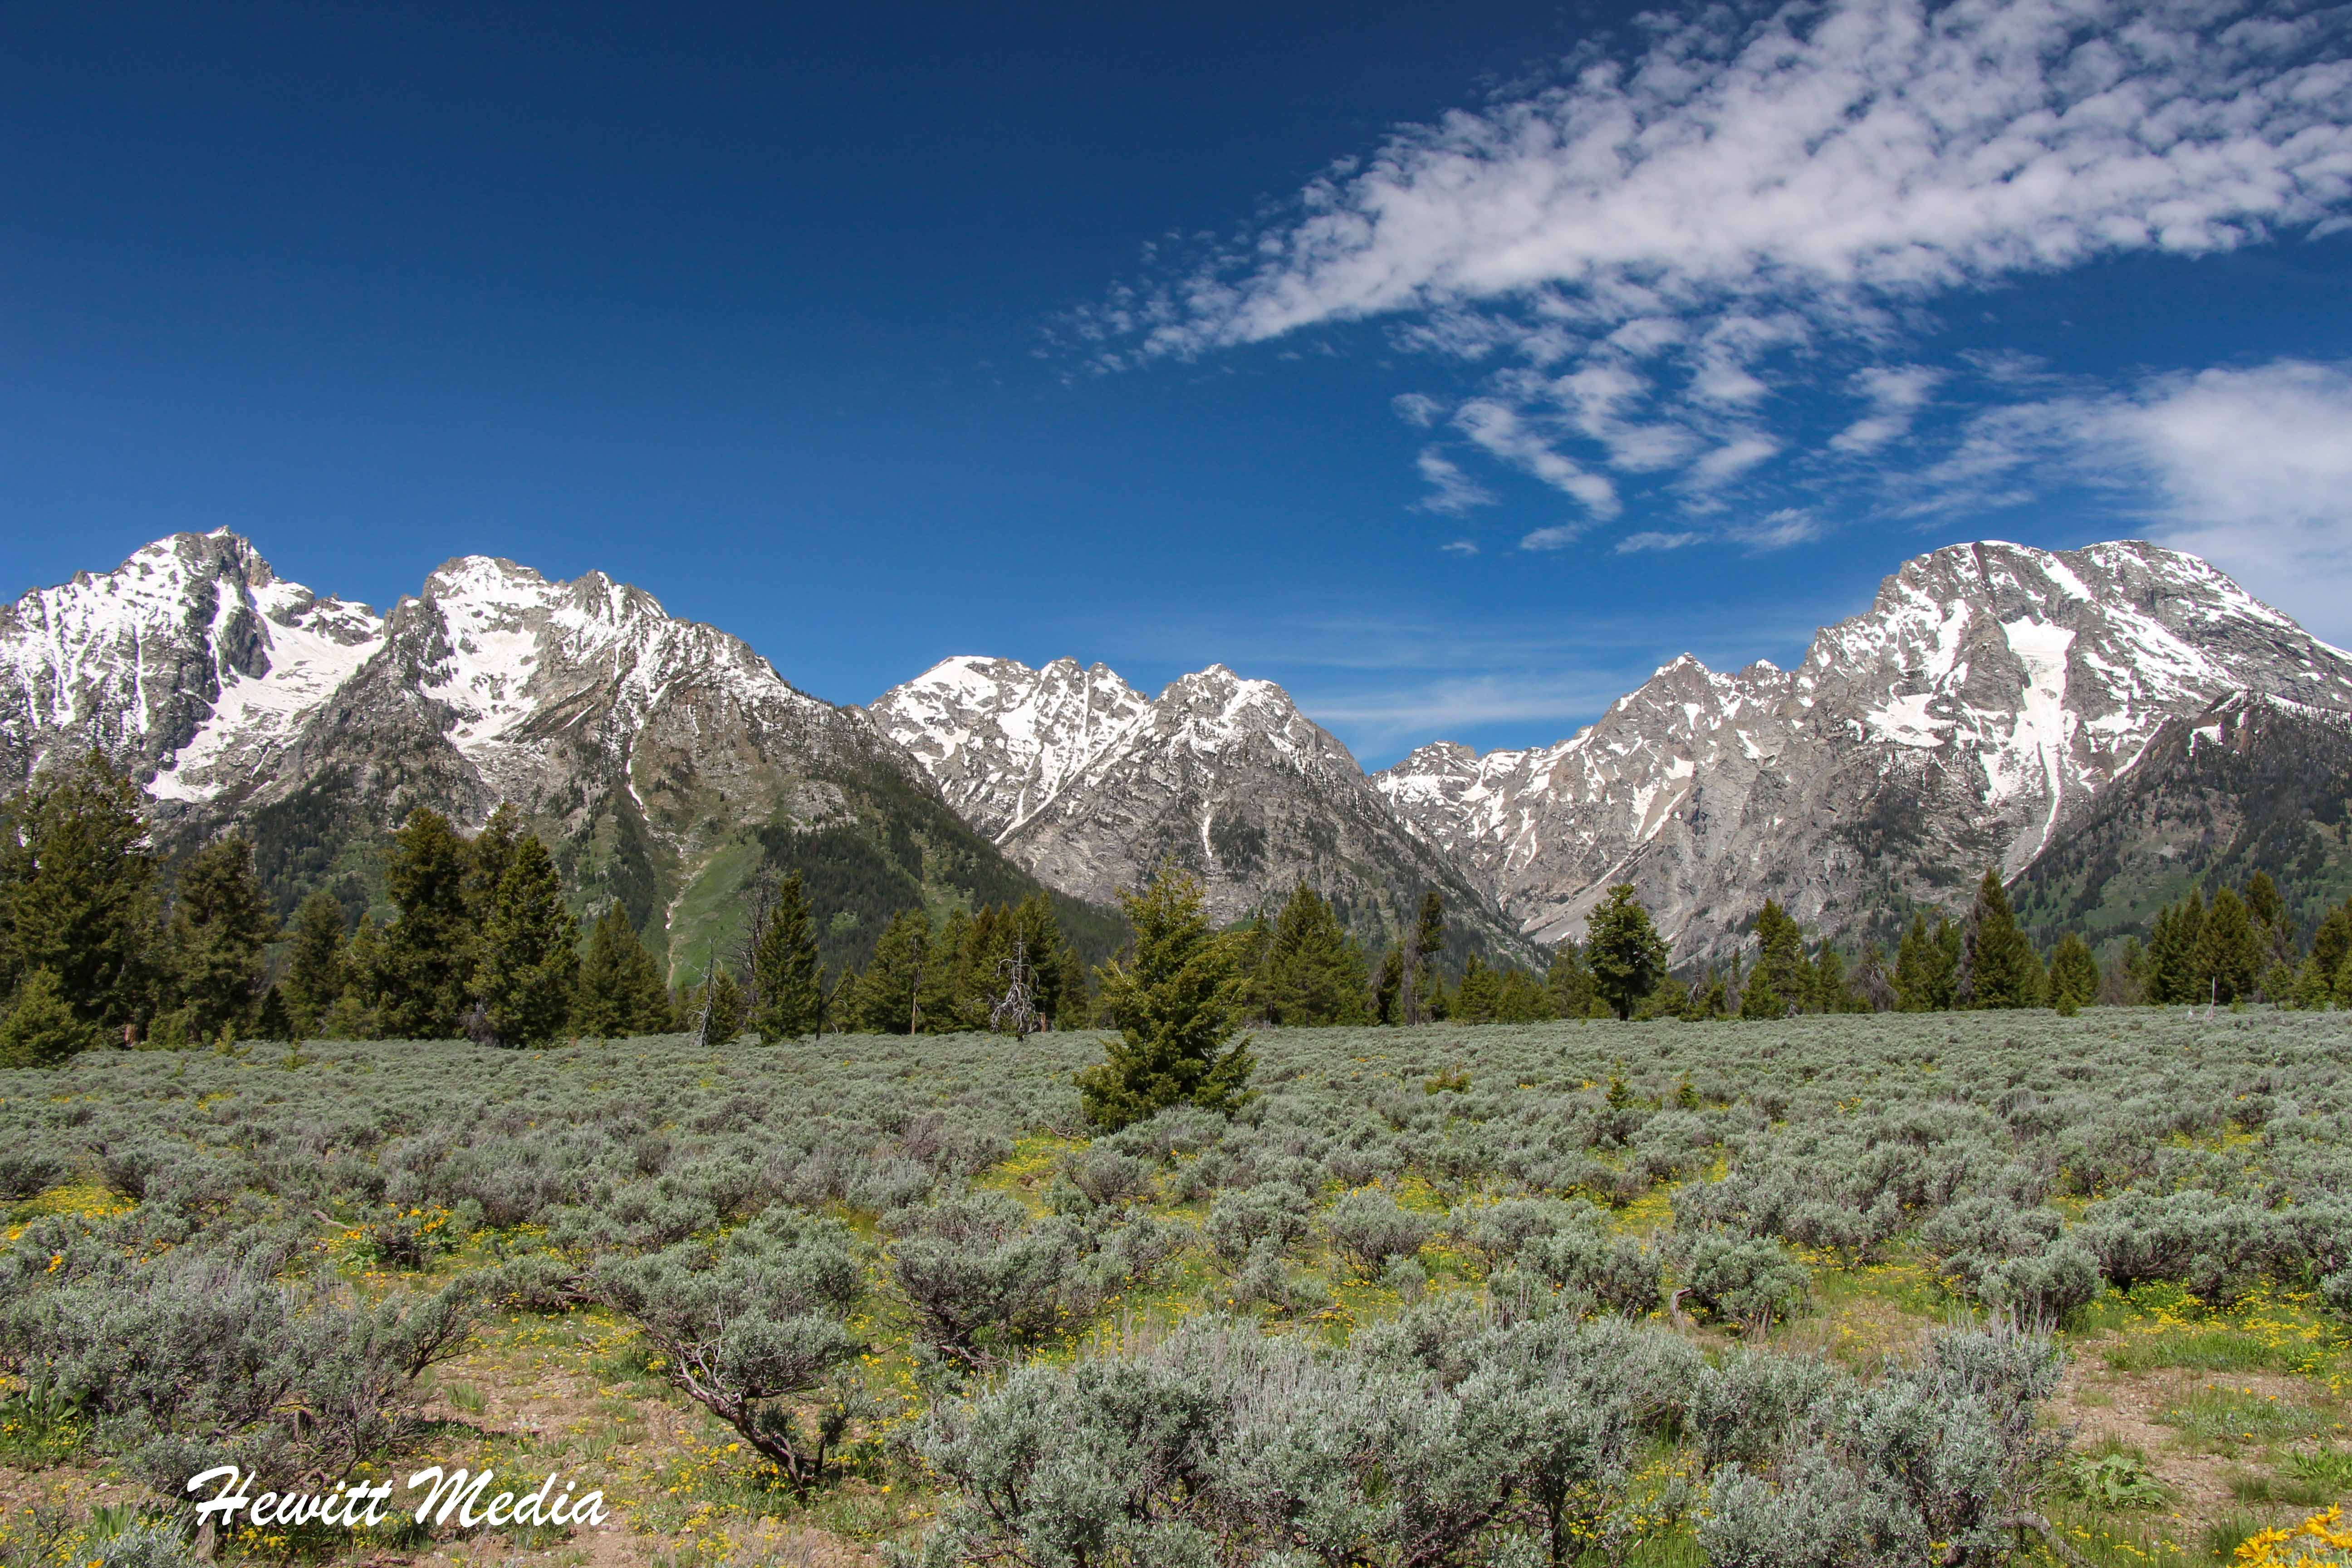 The Grand Teton Range